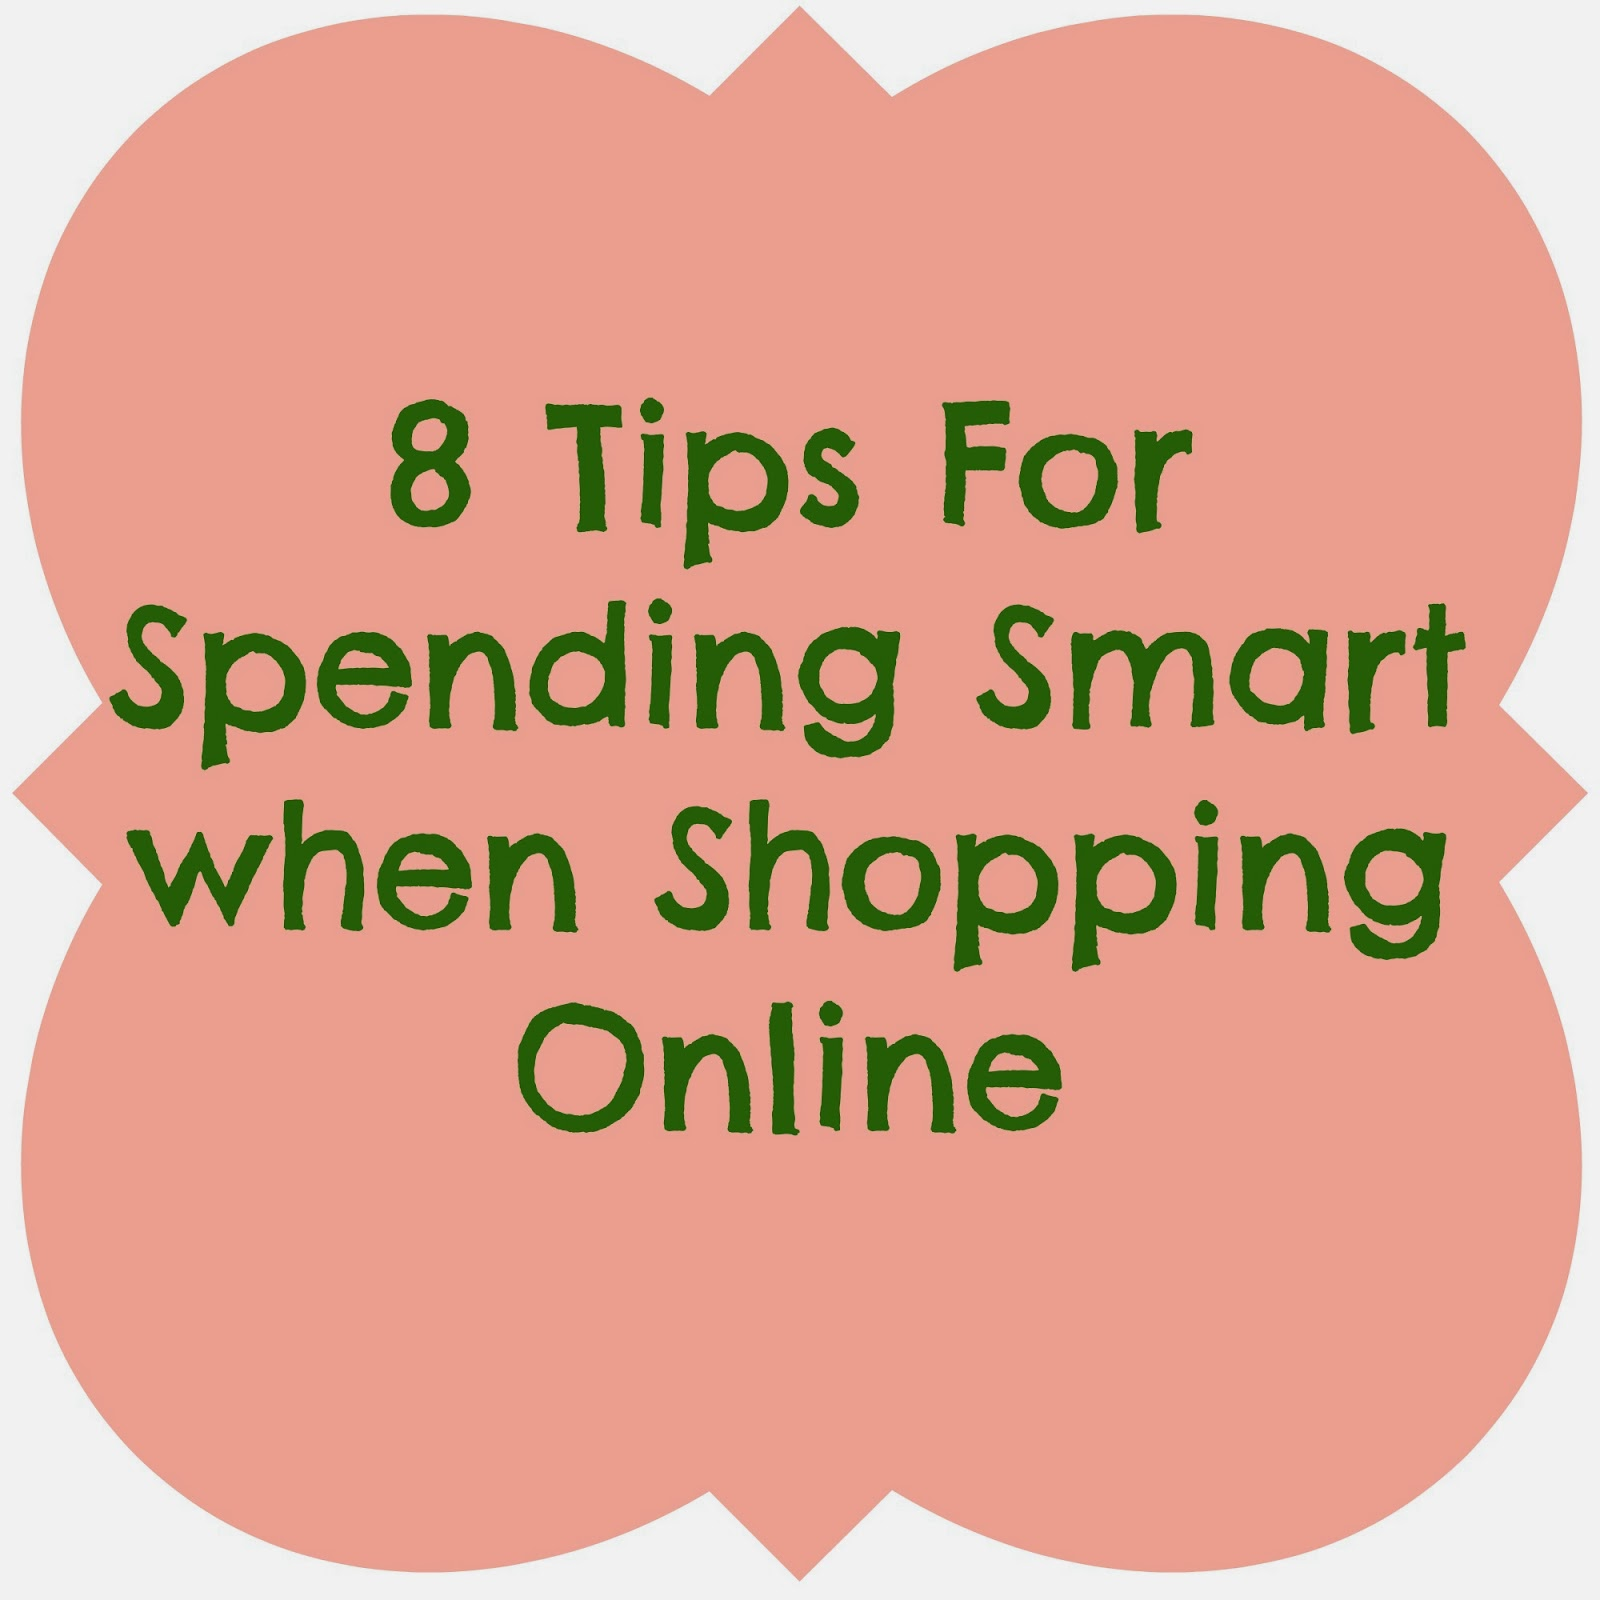 Spending Smart: Online Shopping